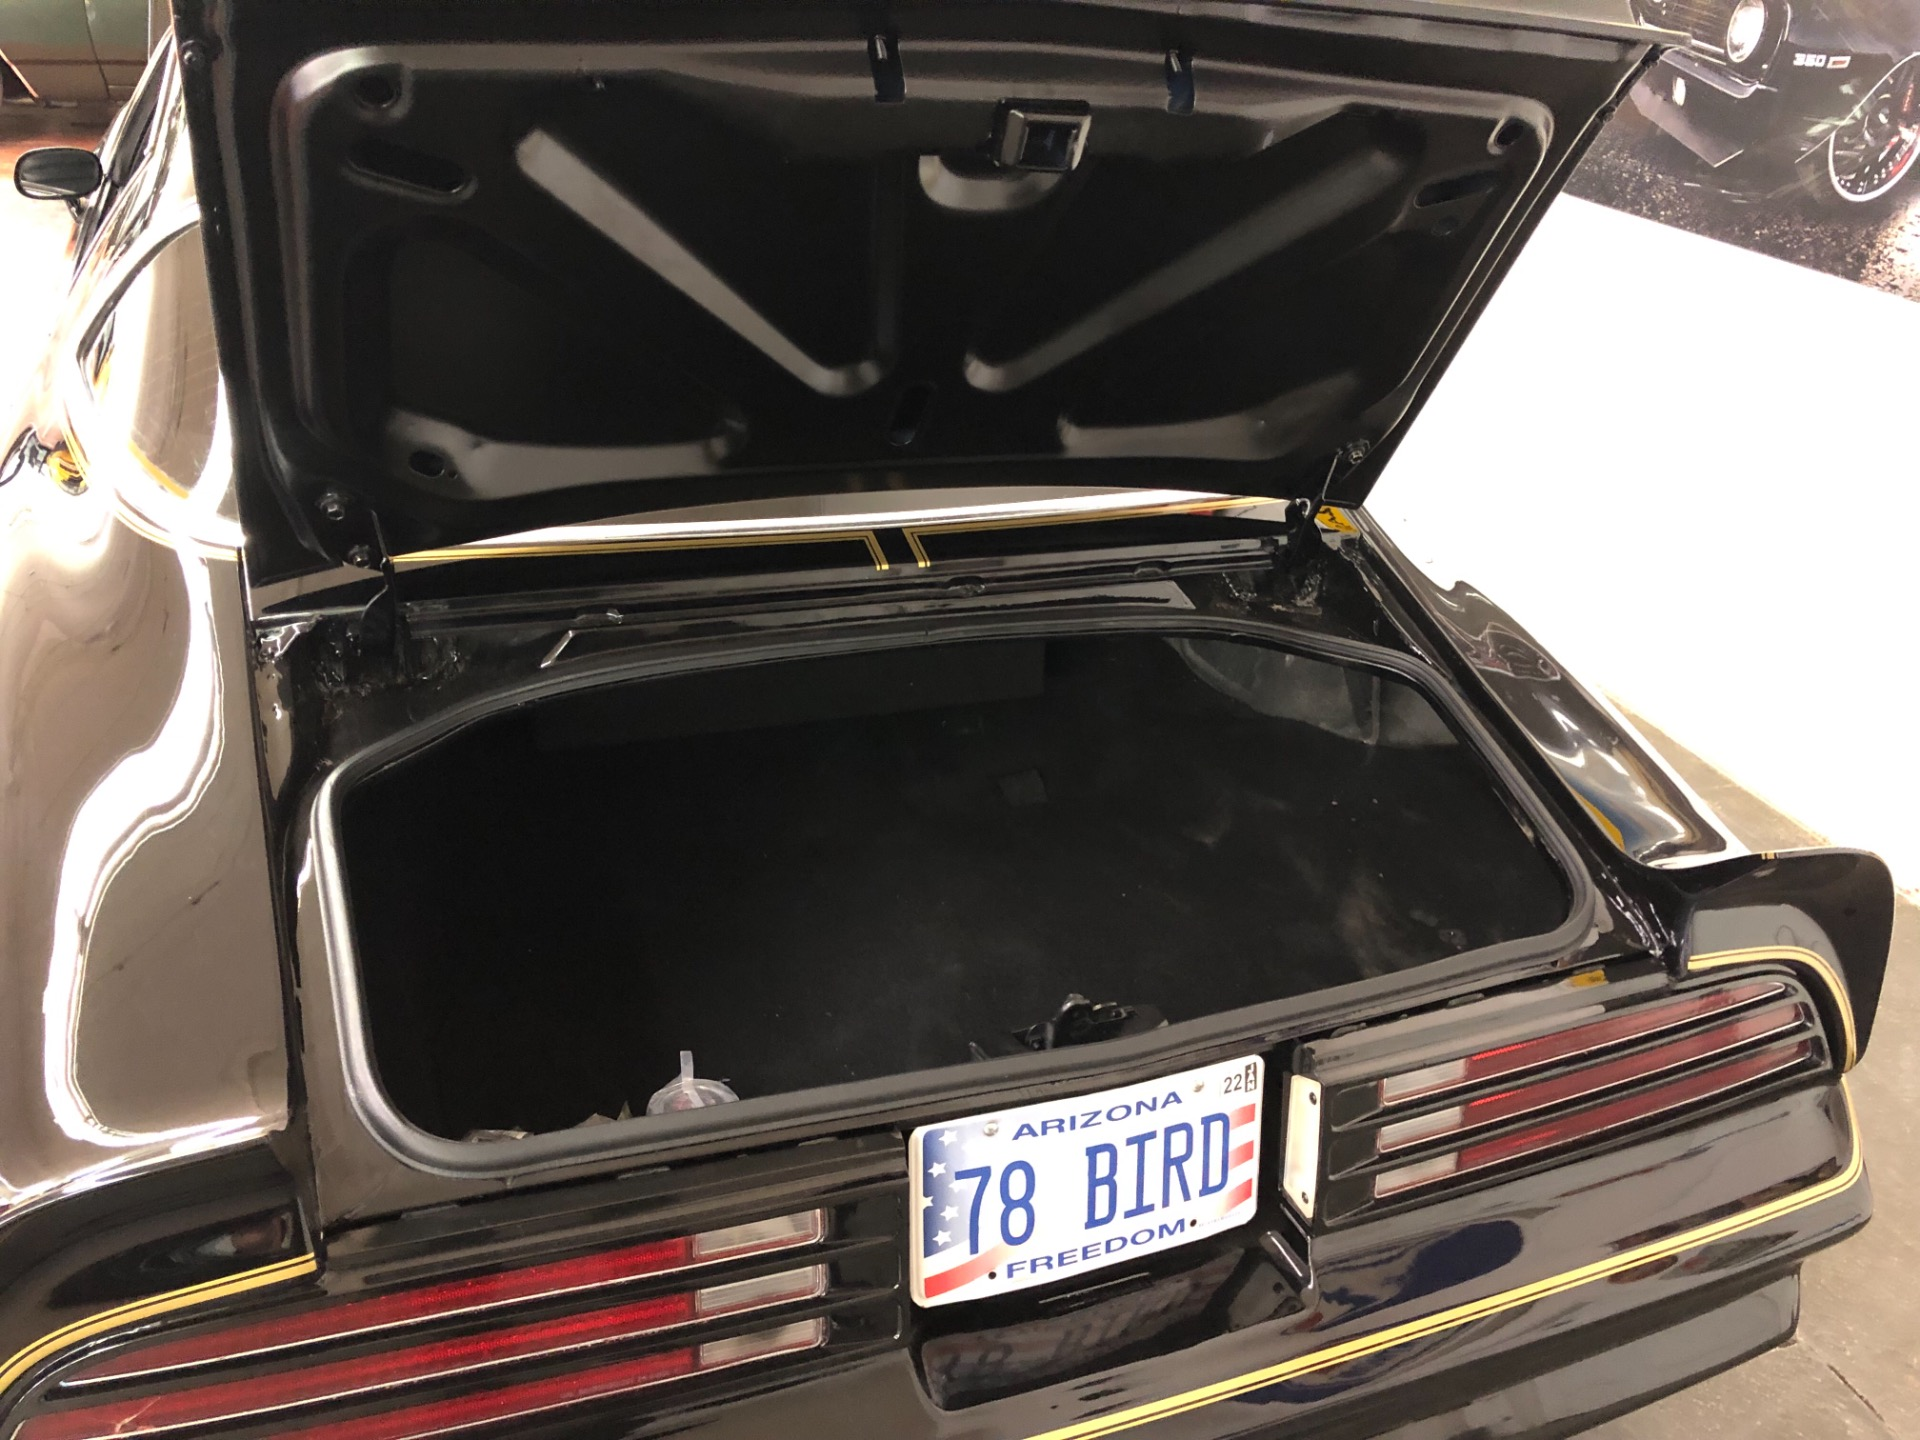 Used 1978 Pontiac Trans Am -RESTORED BANDIT FROM ARIZONA- | Mundelein, IL